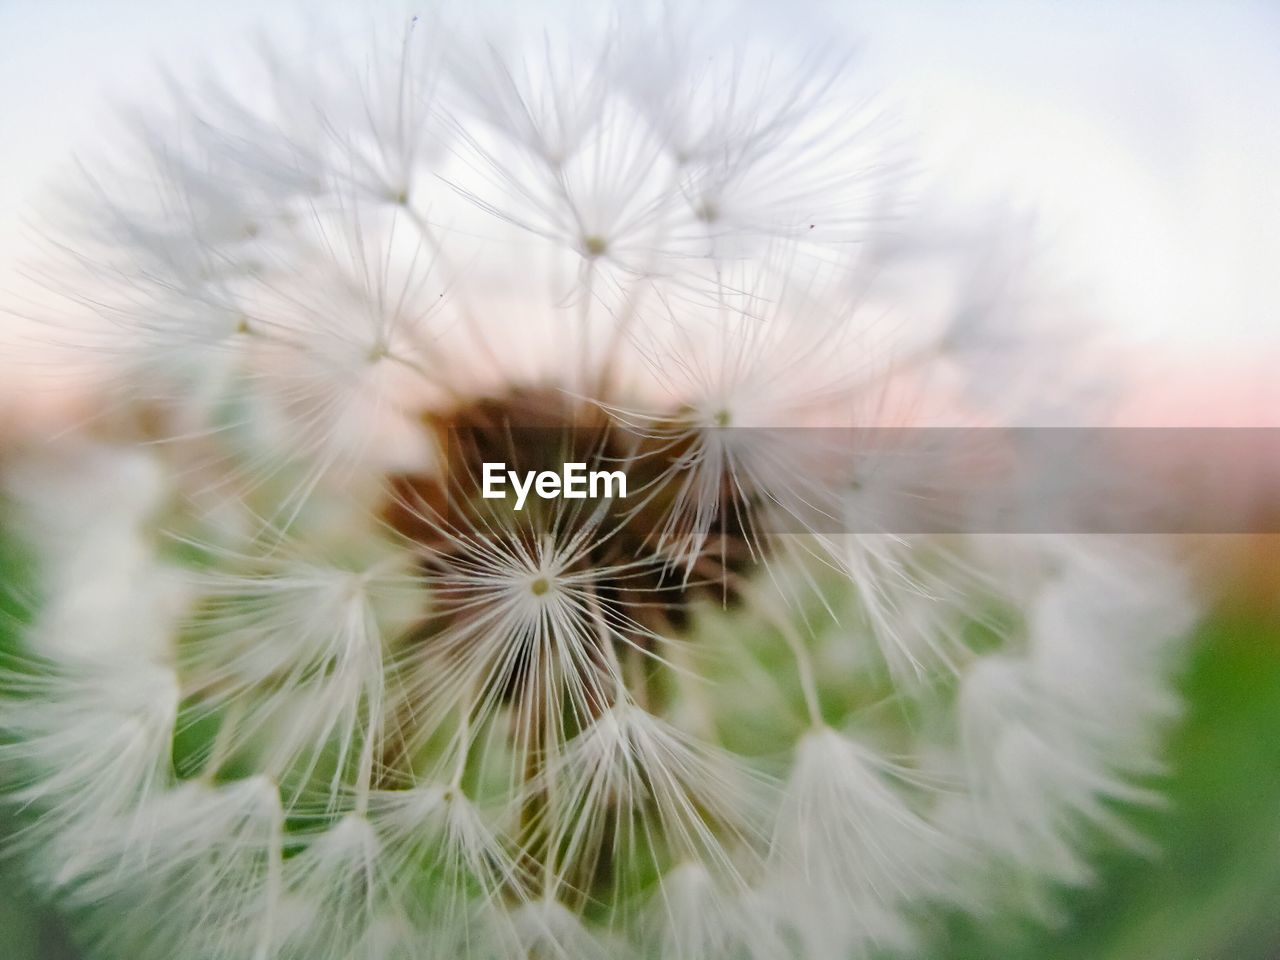 flower, dandelion, fragility, dandelion seed, white color, flower head, freshness, softness, nature, growth, close-up, selective focus, beauty in nature, blossom, petal, plant, uncultivated, no people, seed, springtime, day, outdoors